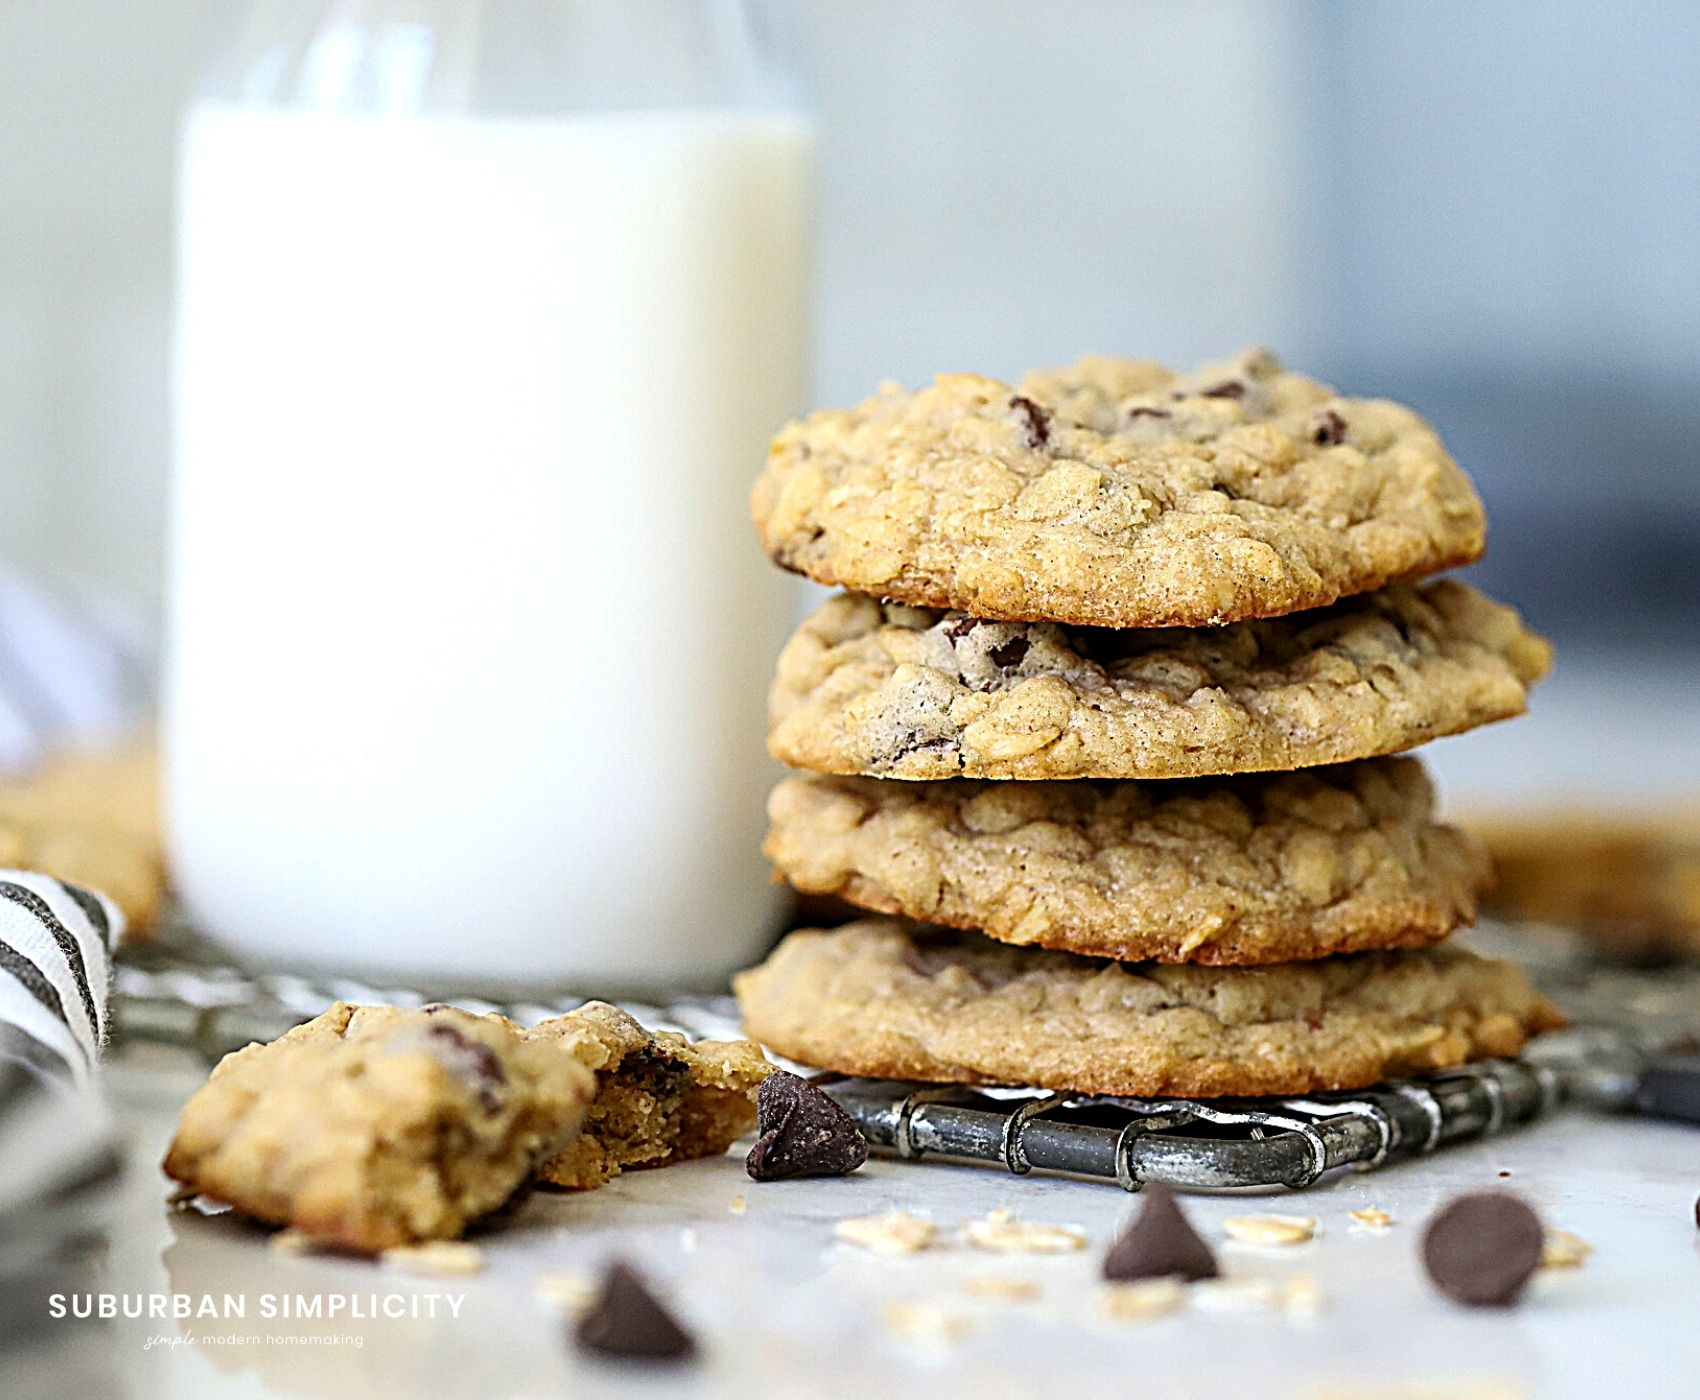 The Best Oatmeal Chocolate Chip Cookies next to a glass of milk